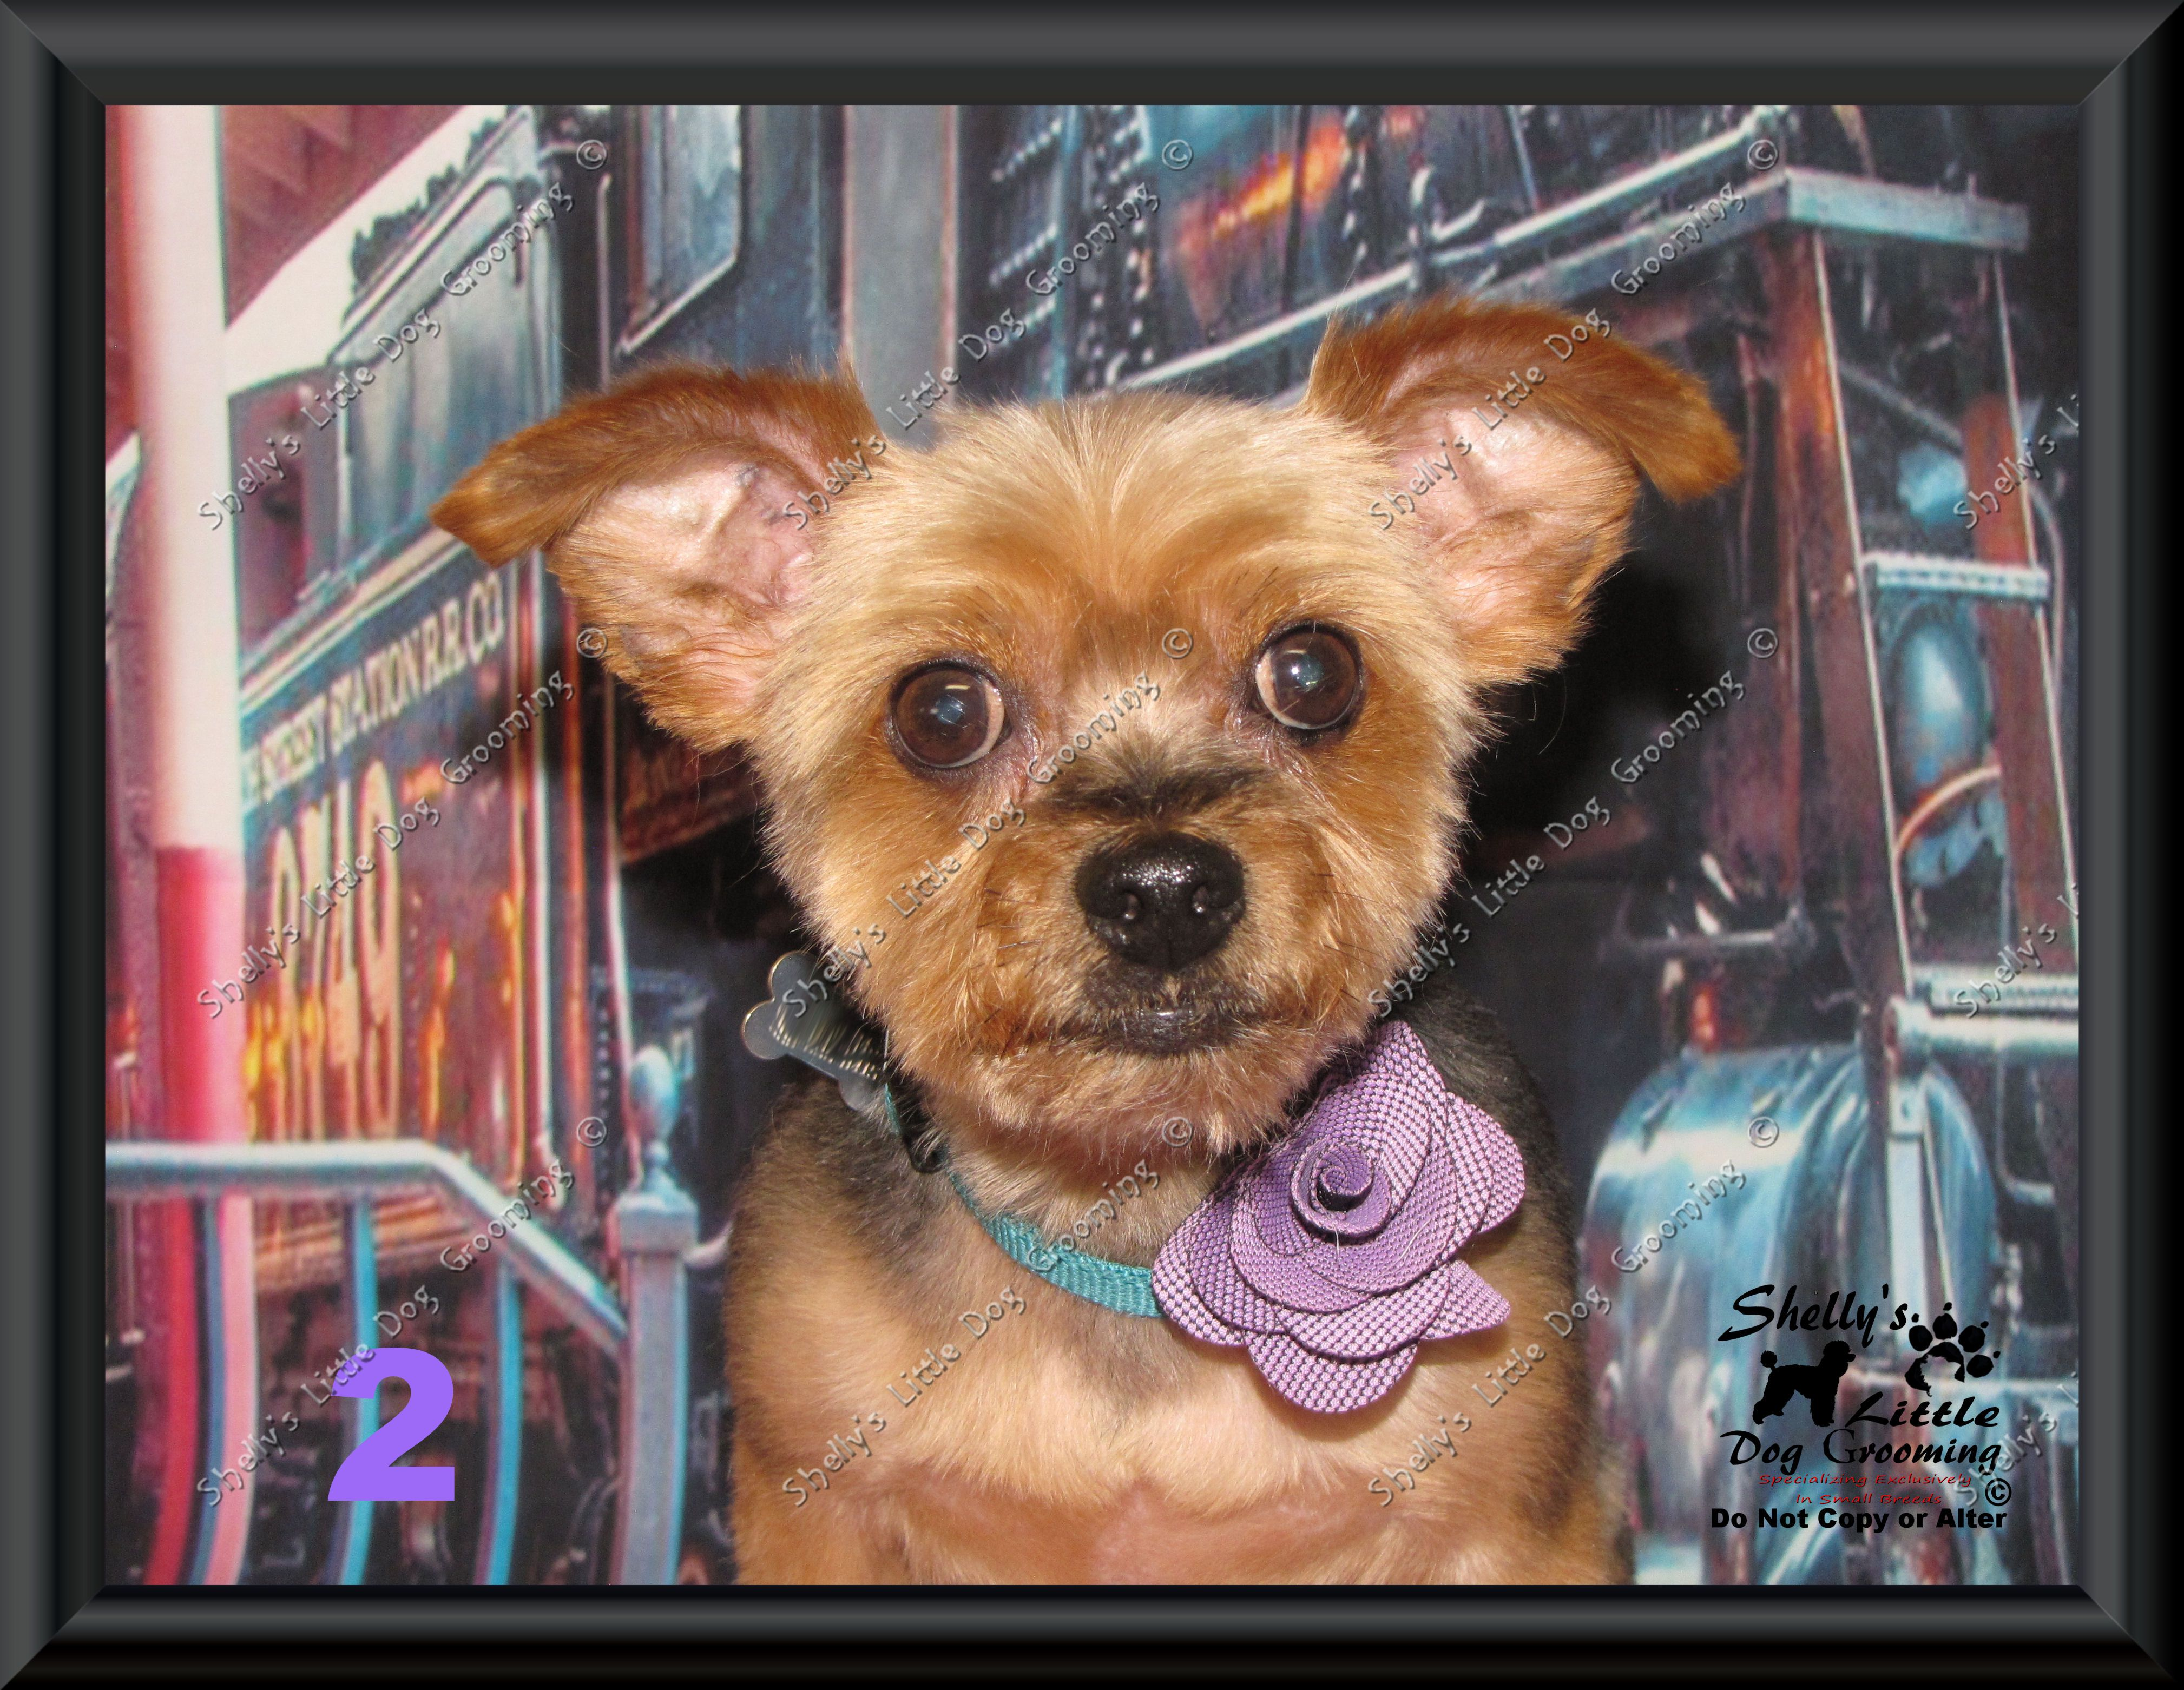 Penny Lane Little Dogs Dogs Dog Grooming